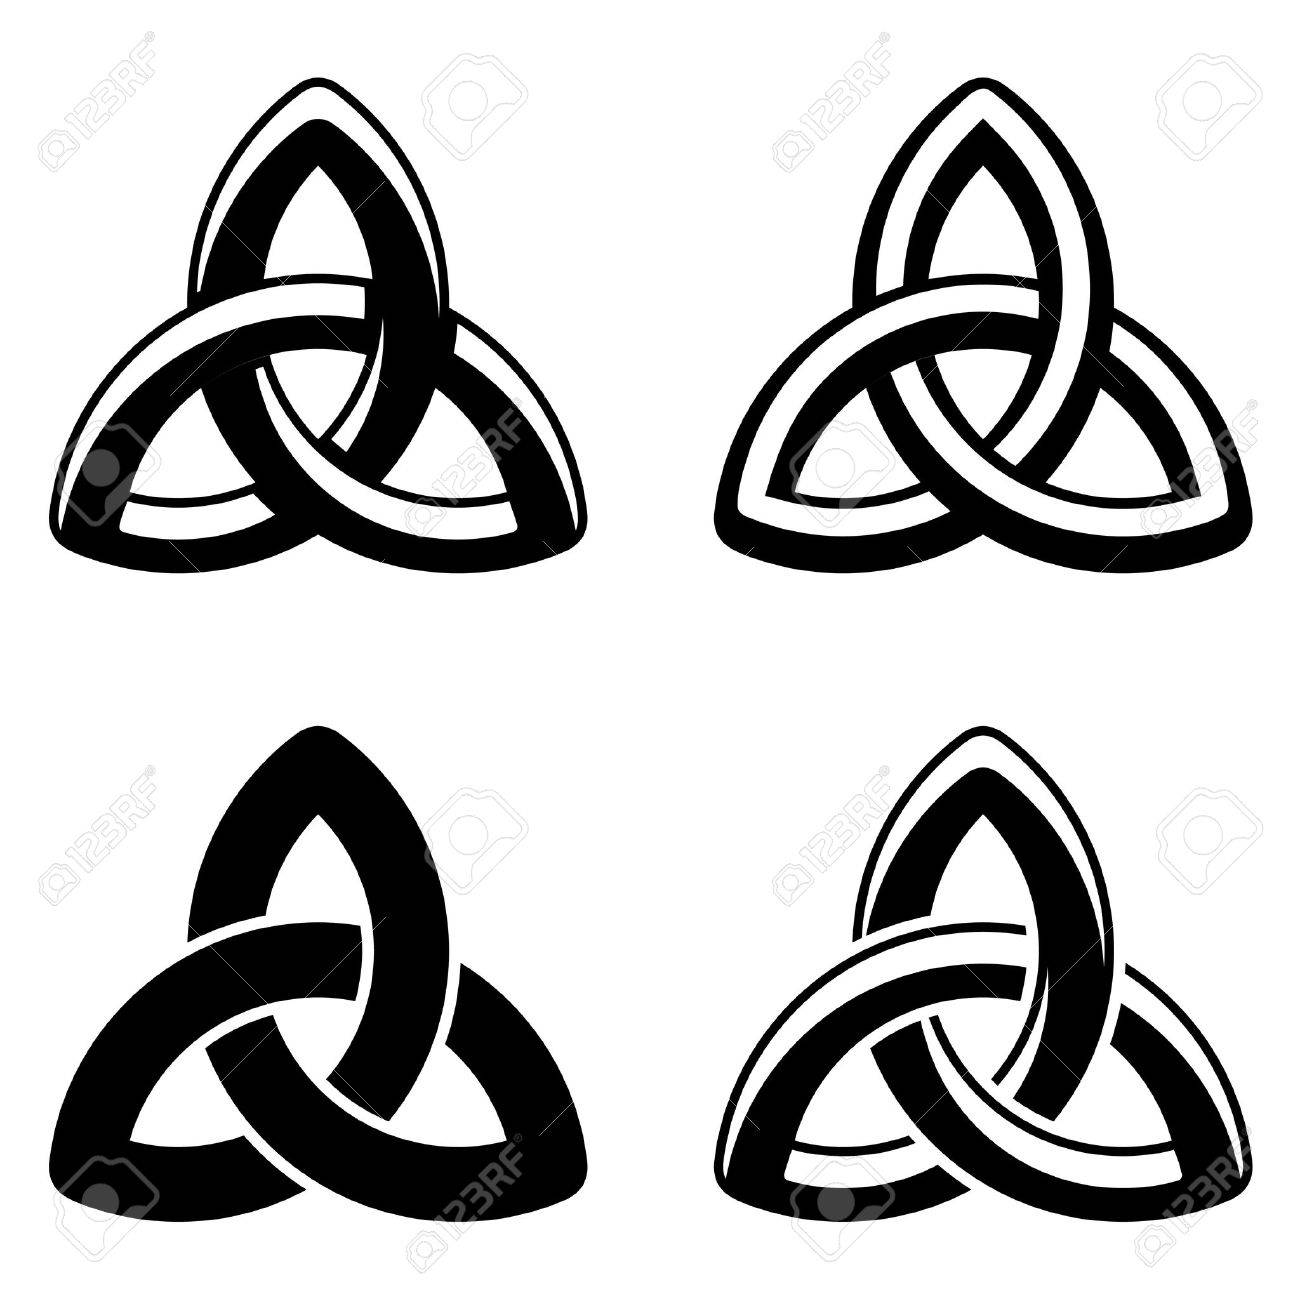 214052 mystical cliparts stock vector and royalty free mystical vector celtic knot black white symbols biocorpaavc